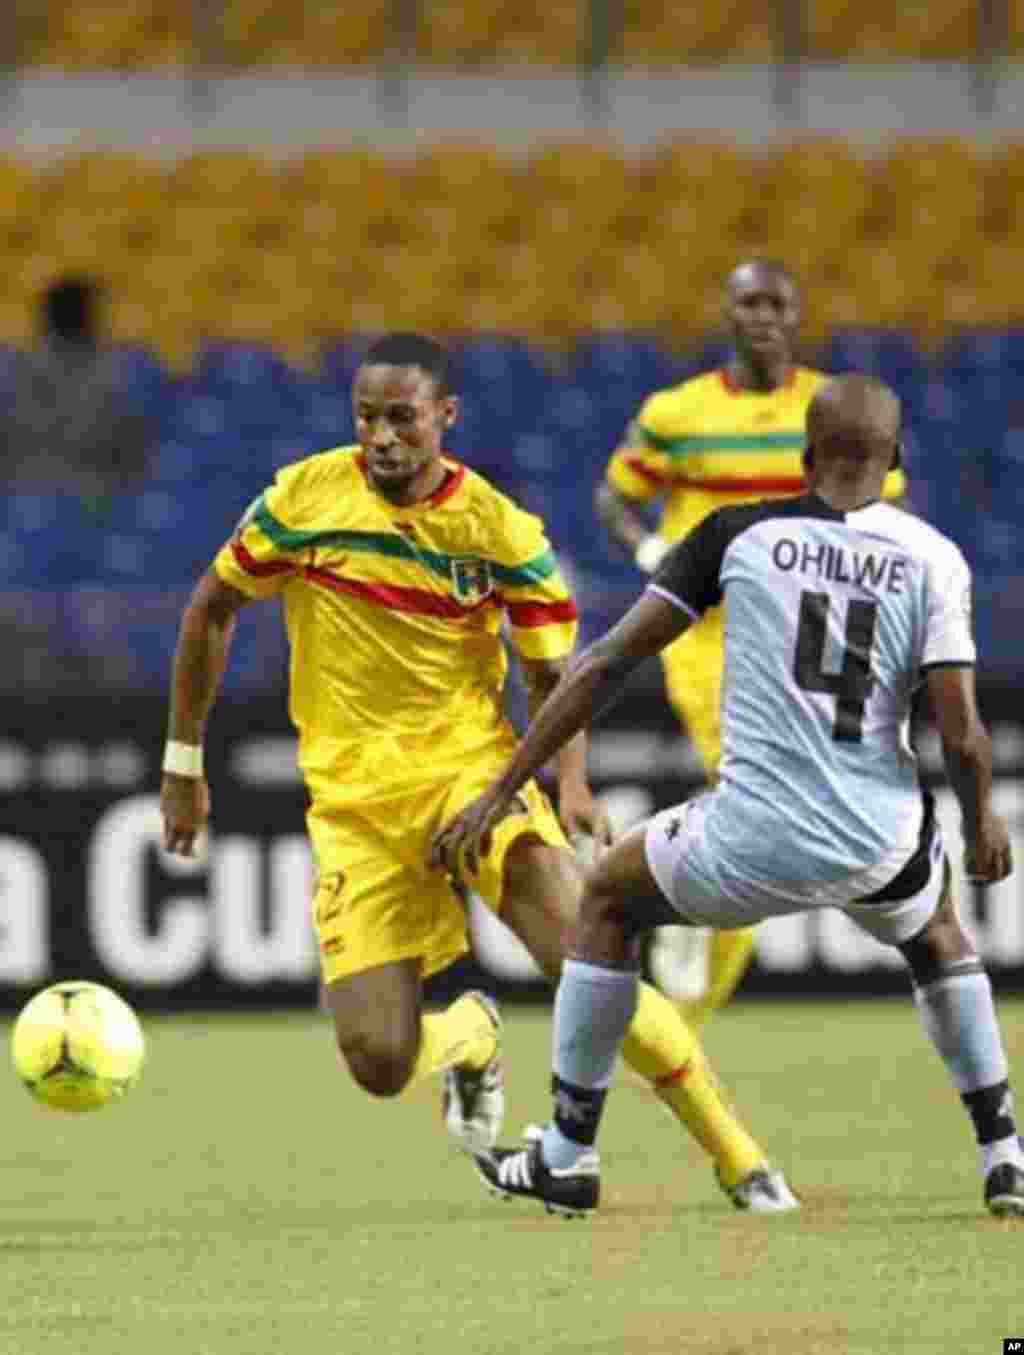 Mali's Seydou Keita (12) plays against Botswana's Mmusa Ohilwe during their final African Cup of Nations Group D soccer match at the Stade De L'Amitie Stadium in Libreville February 1, 2012.